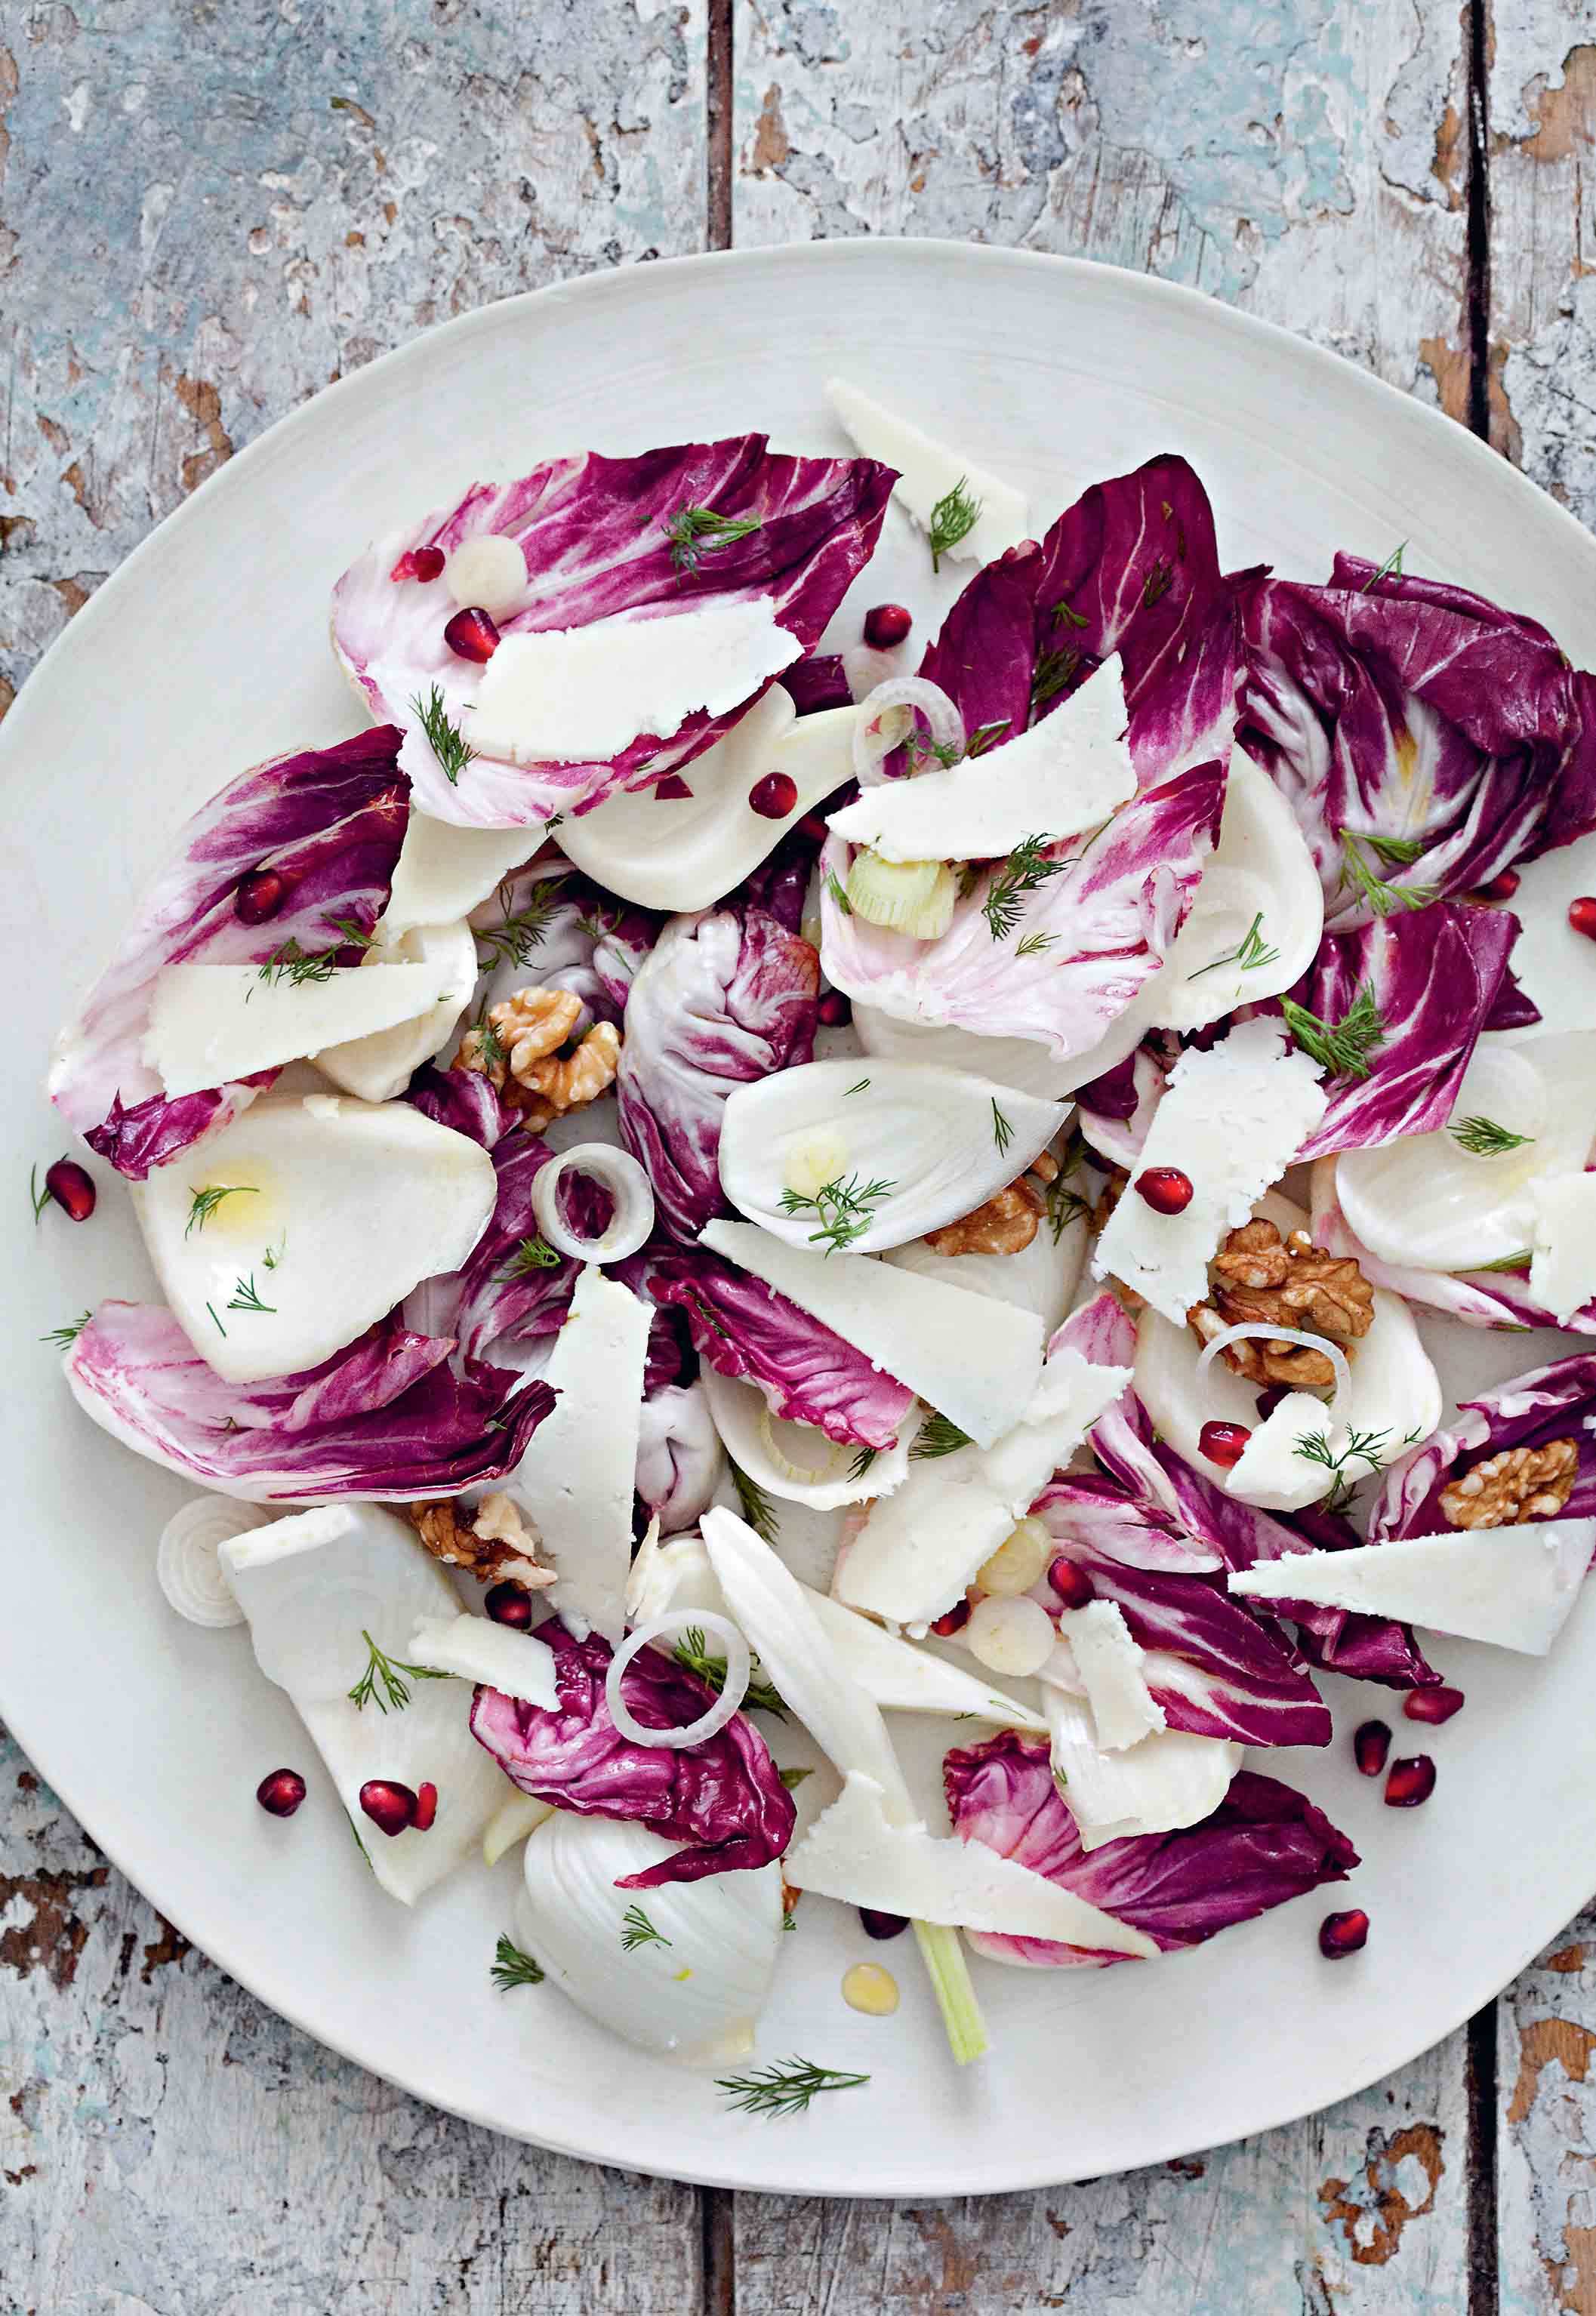 Walnut, fennel & pomegranate salad